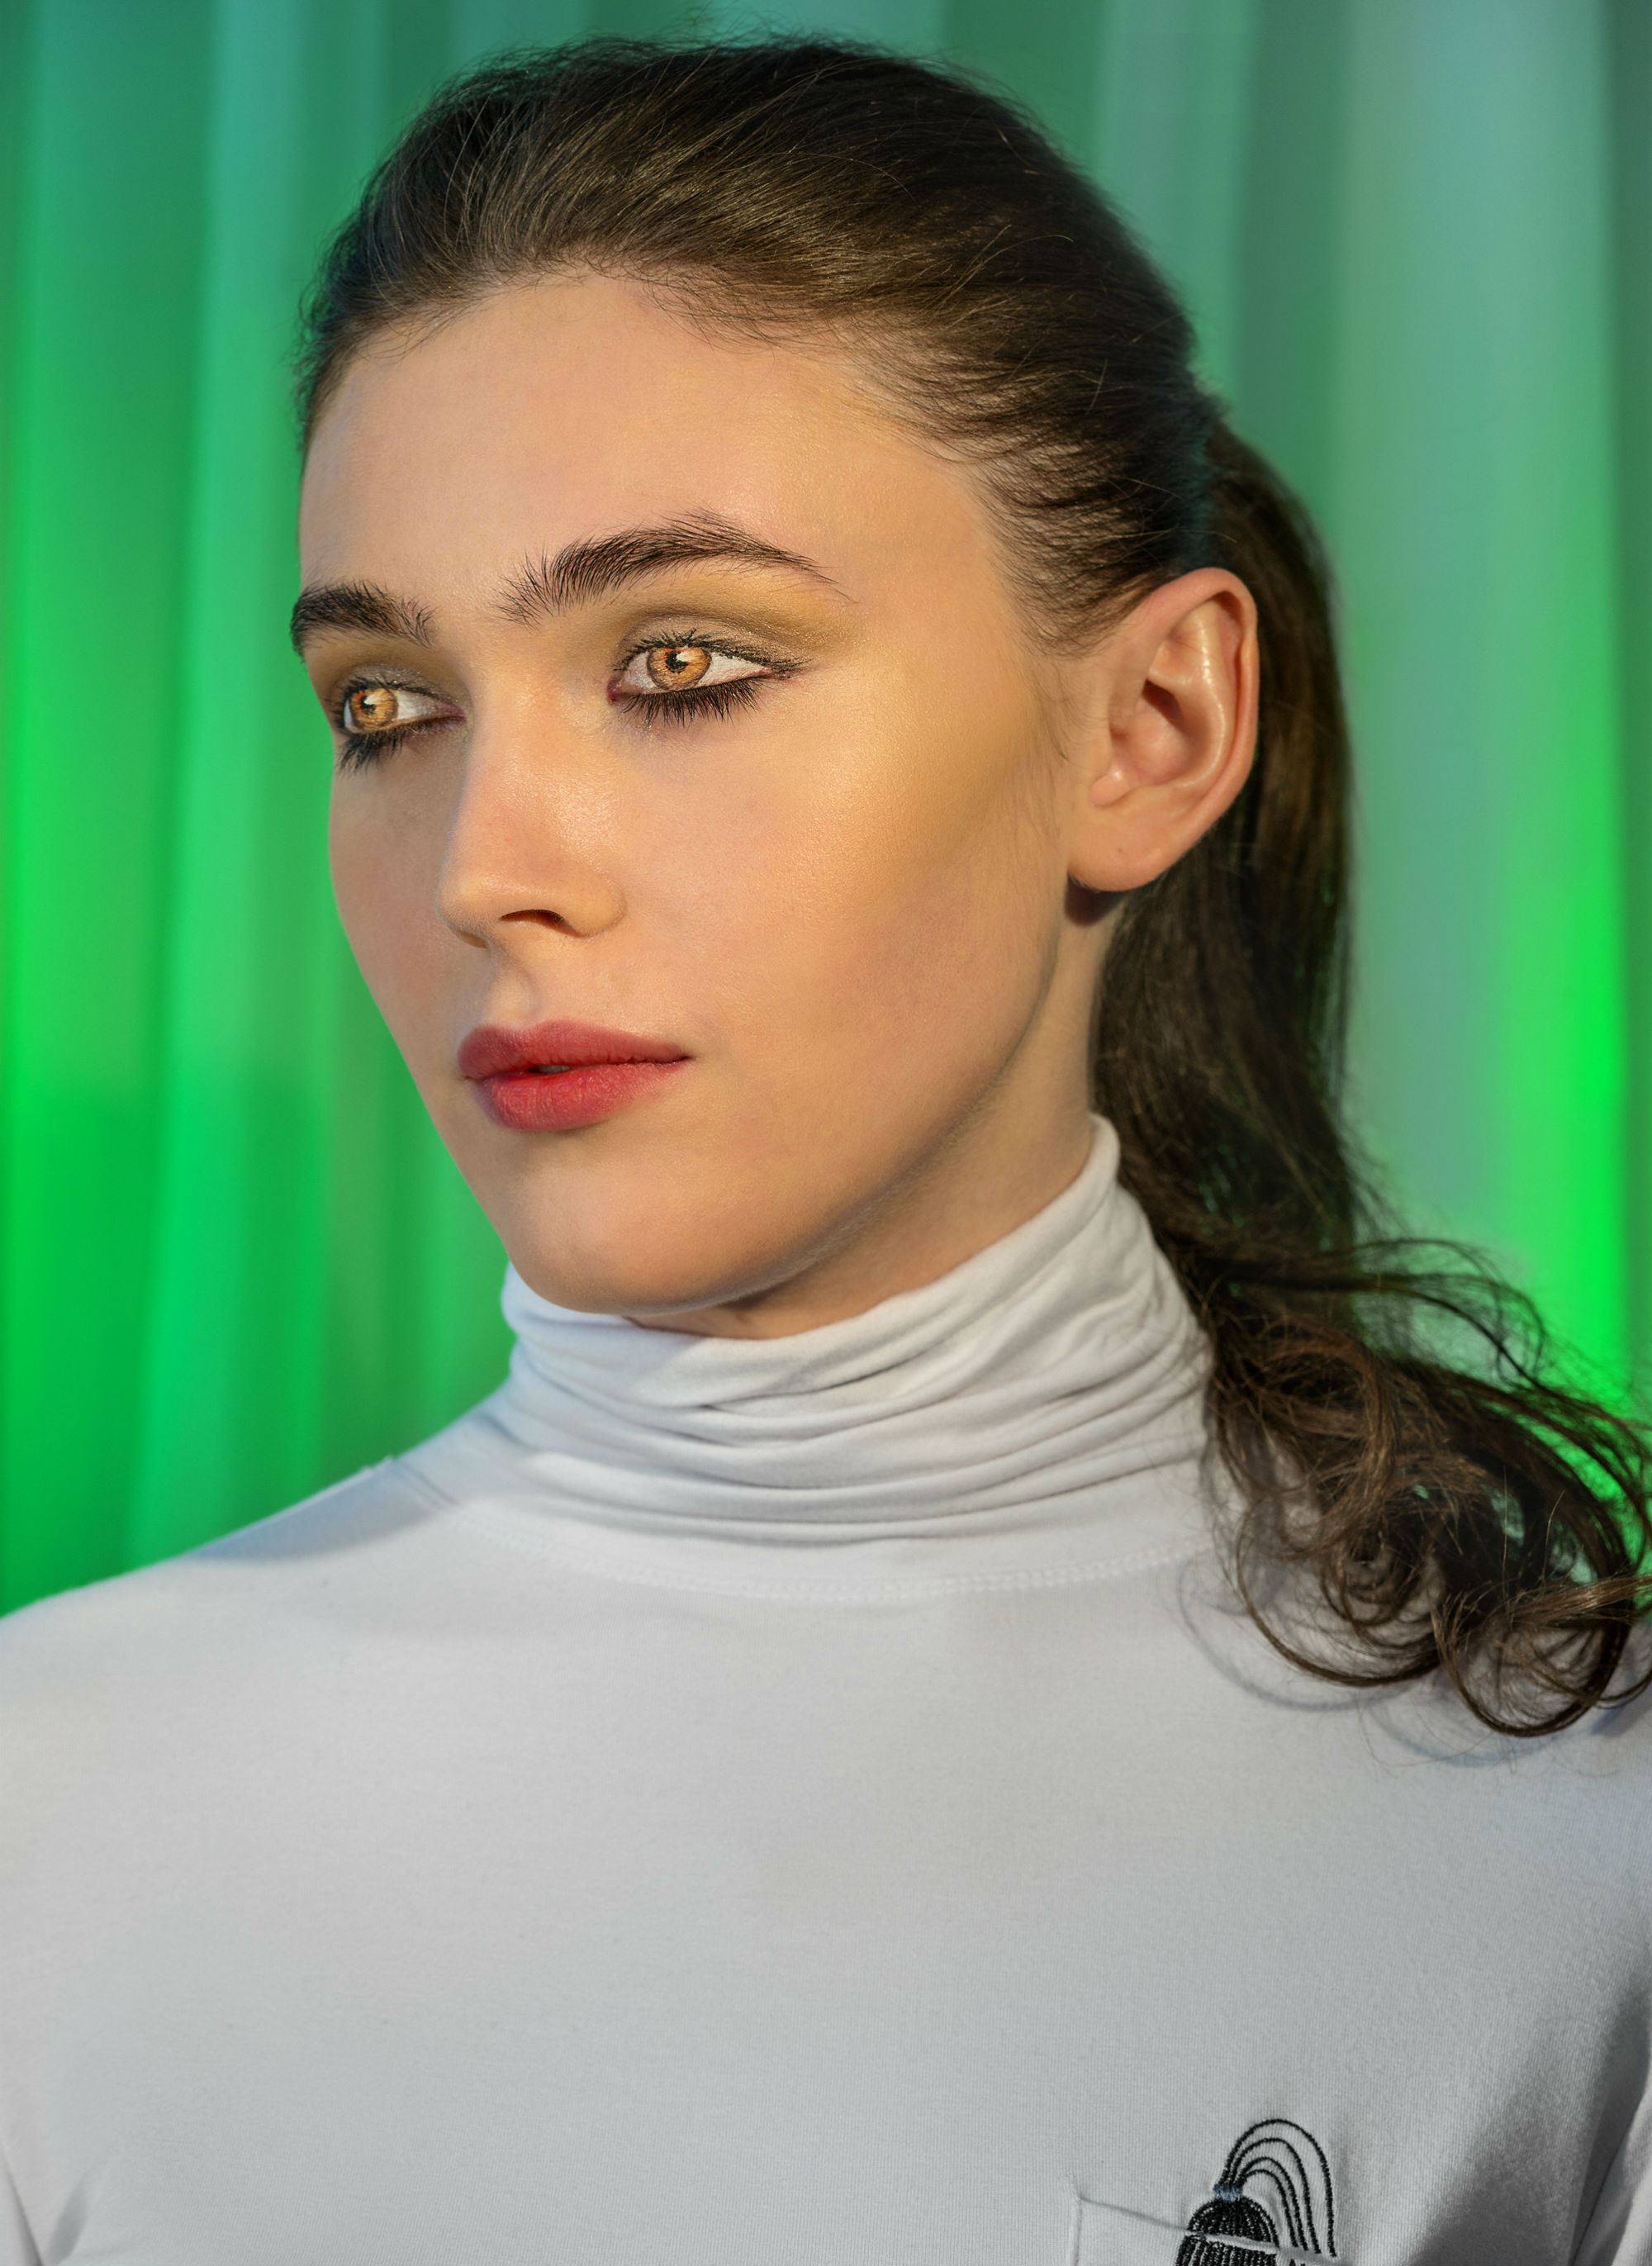 Eyes Wide Open: Optical Illusions by Laurie Simmons